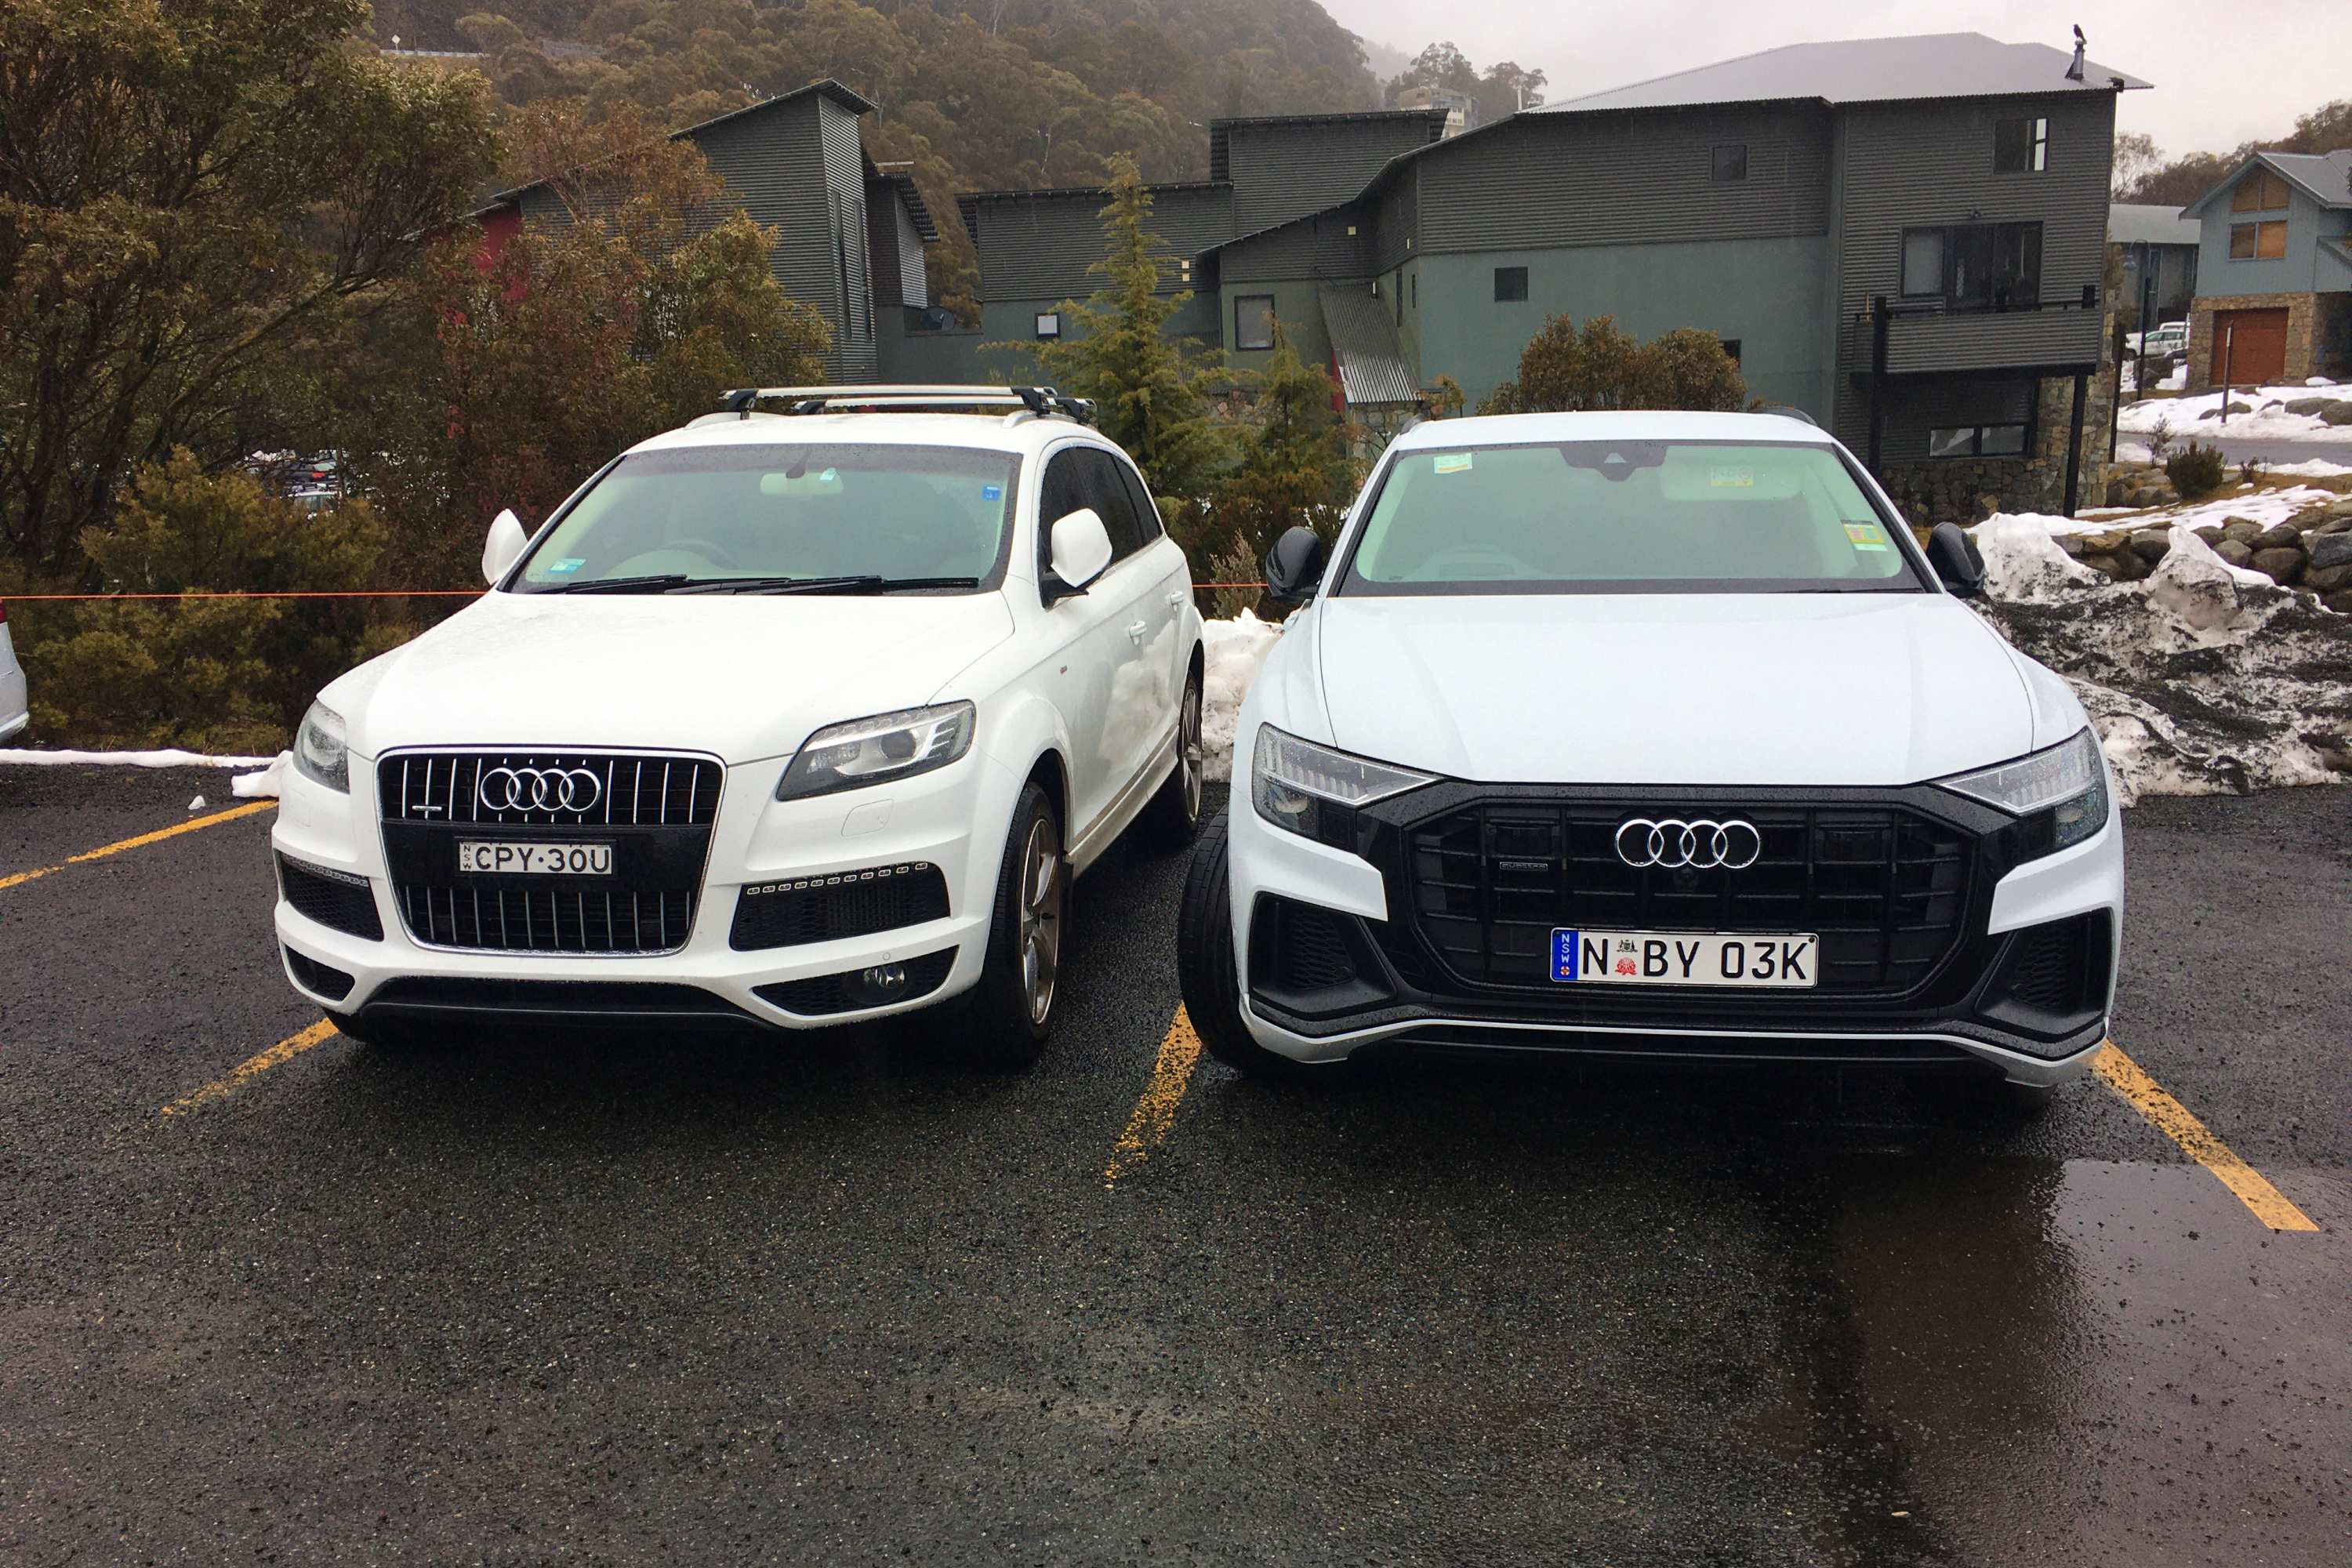 Audi Q8 50 TDI S-LINE QUATTRO with another audi